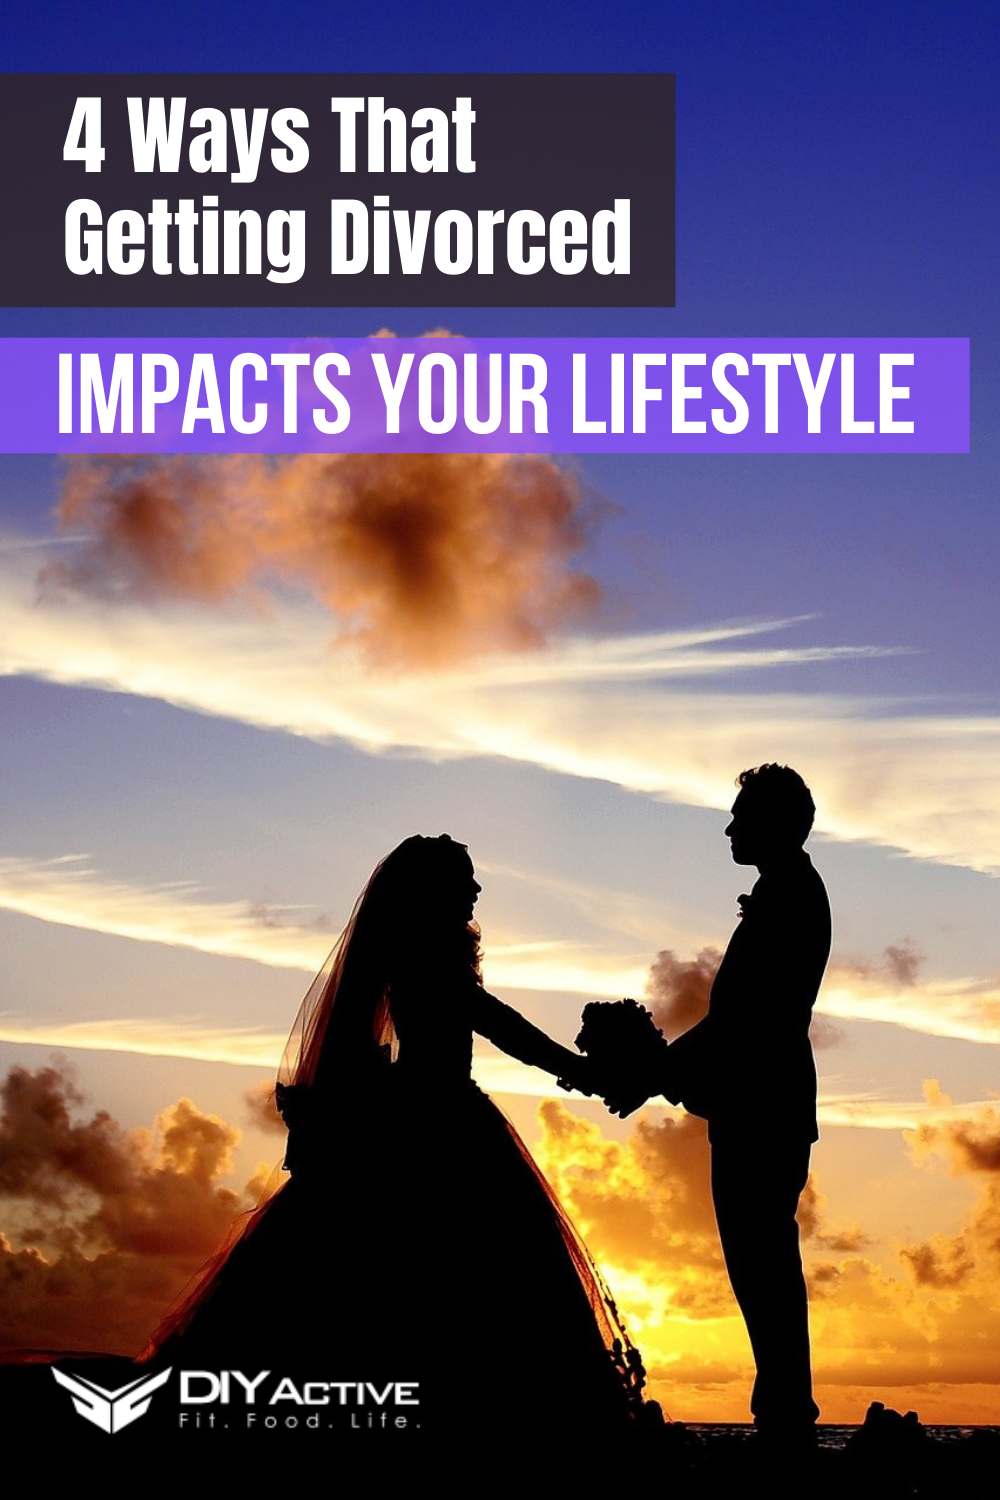 4 Ways That Getting Divorced Impacts Your Lifestyle